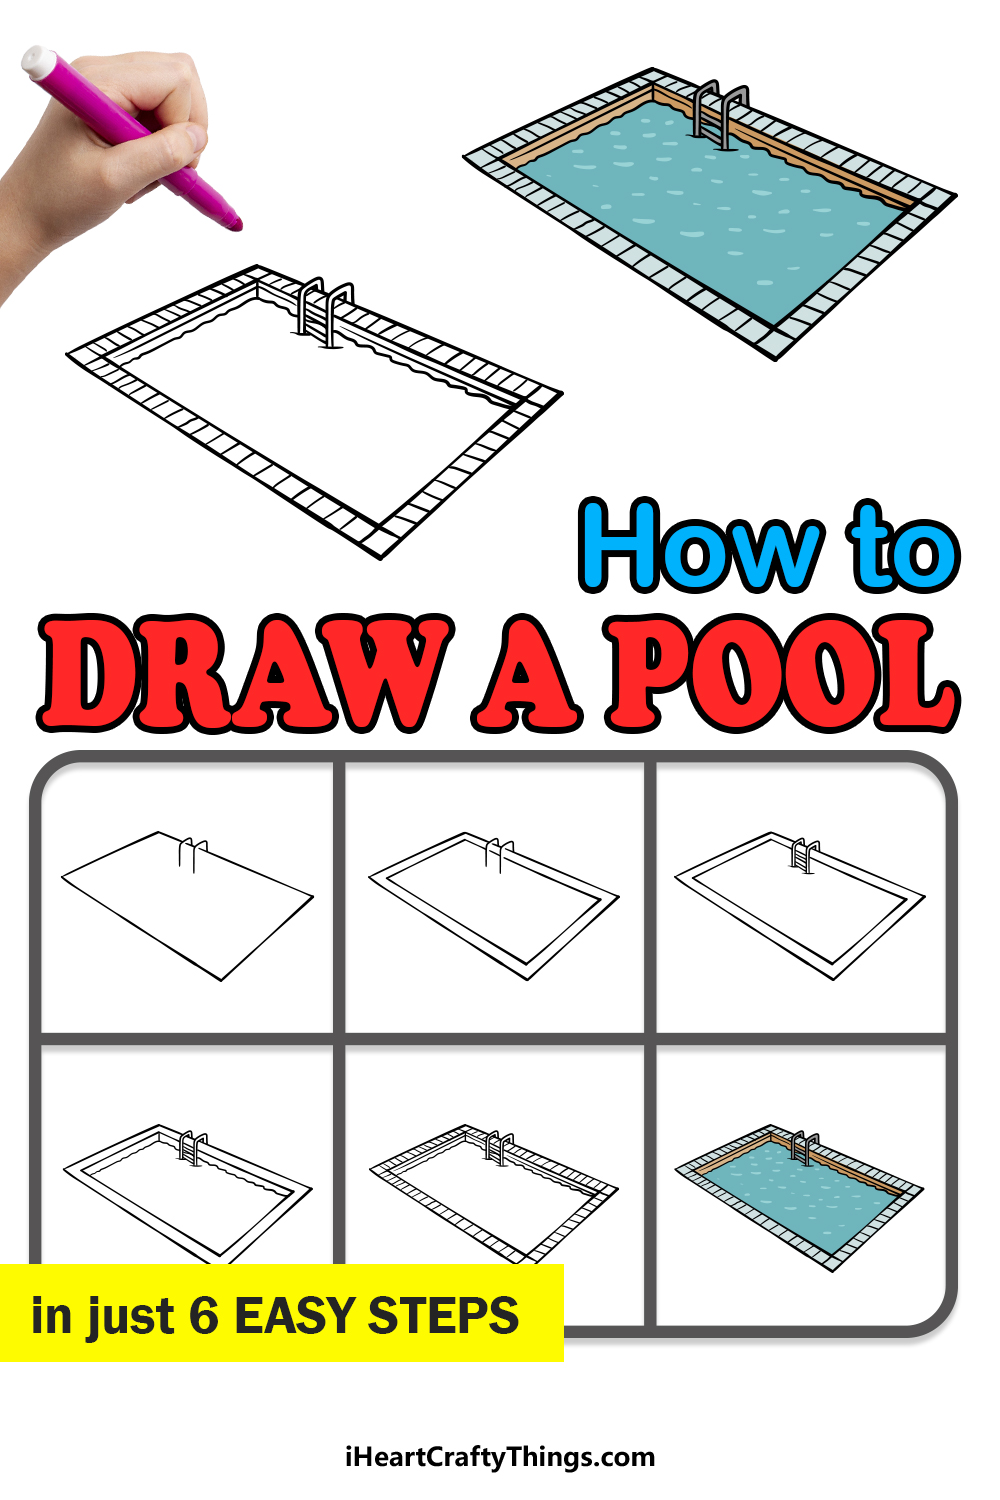 how to draw a pool in 6 easy steps